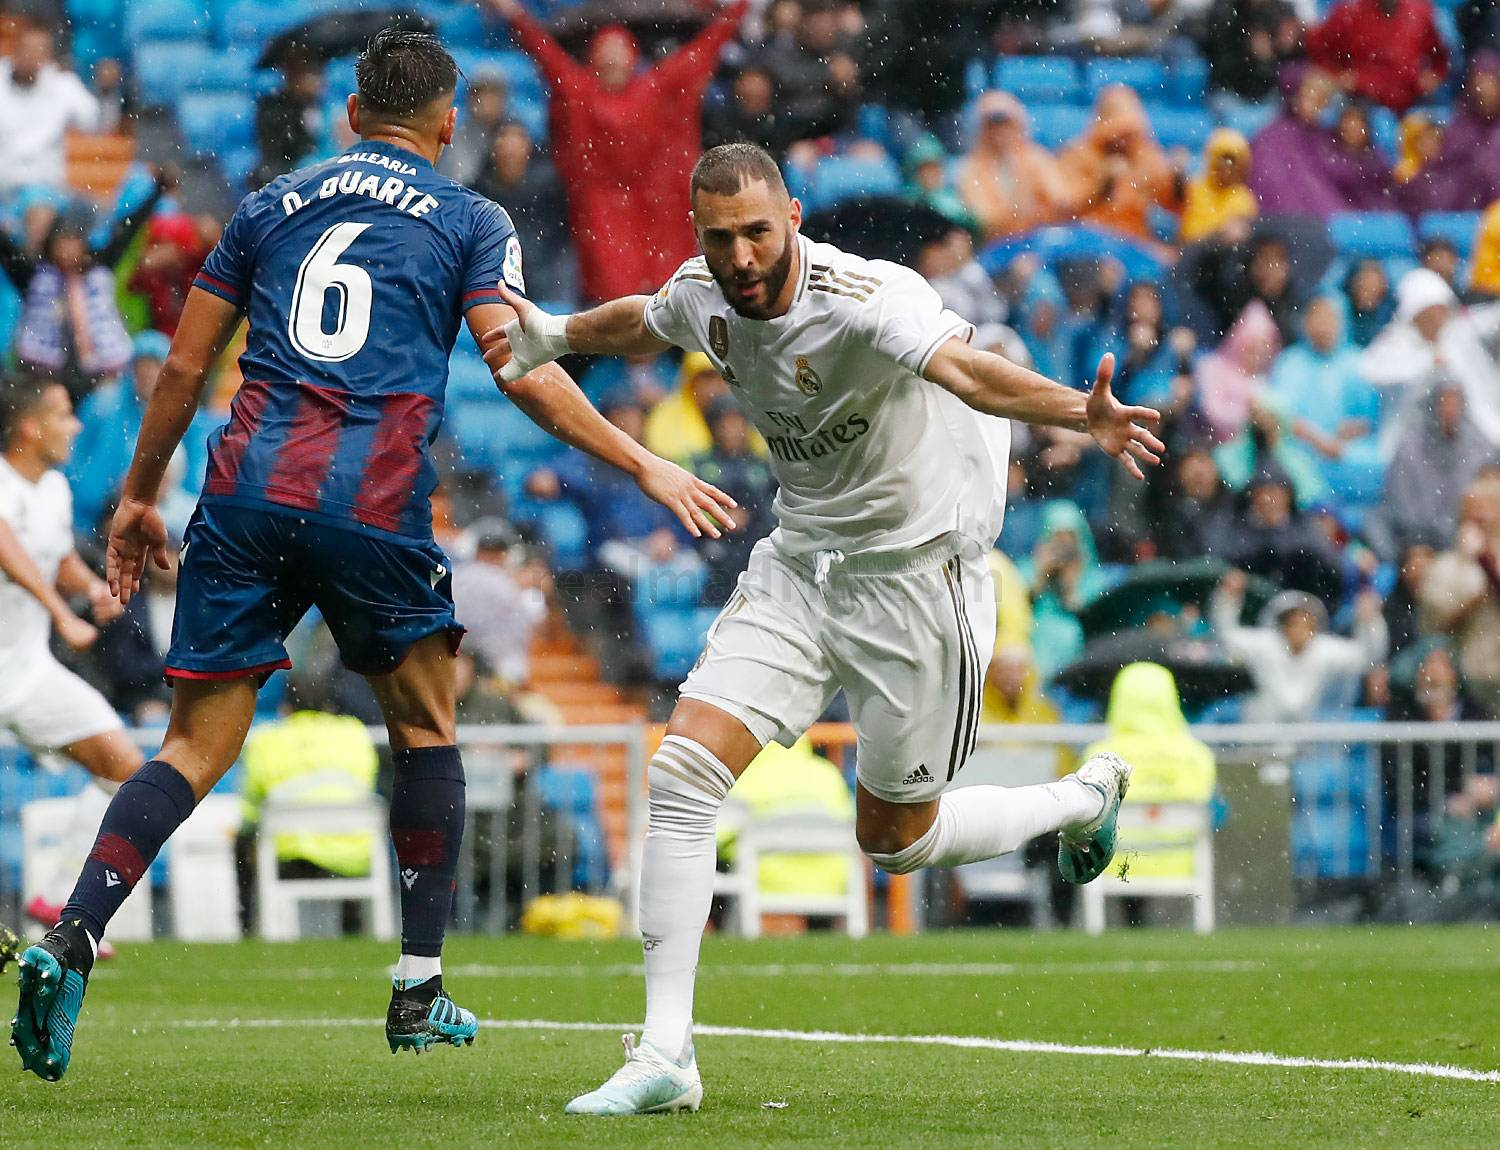 Real Madrid - Real Madrid - Levante - 14-09-2019